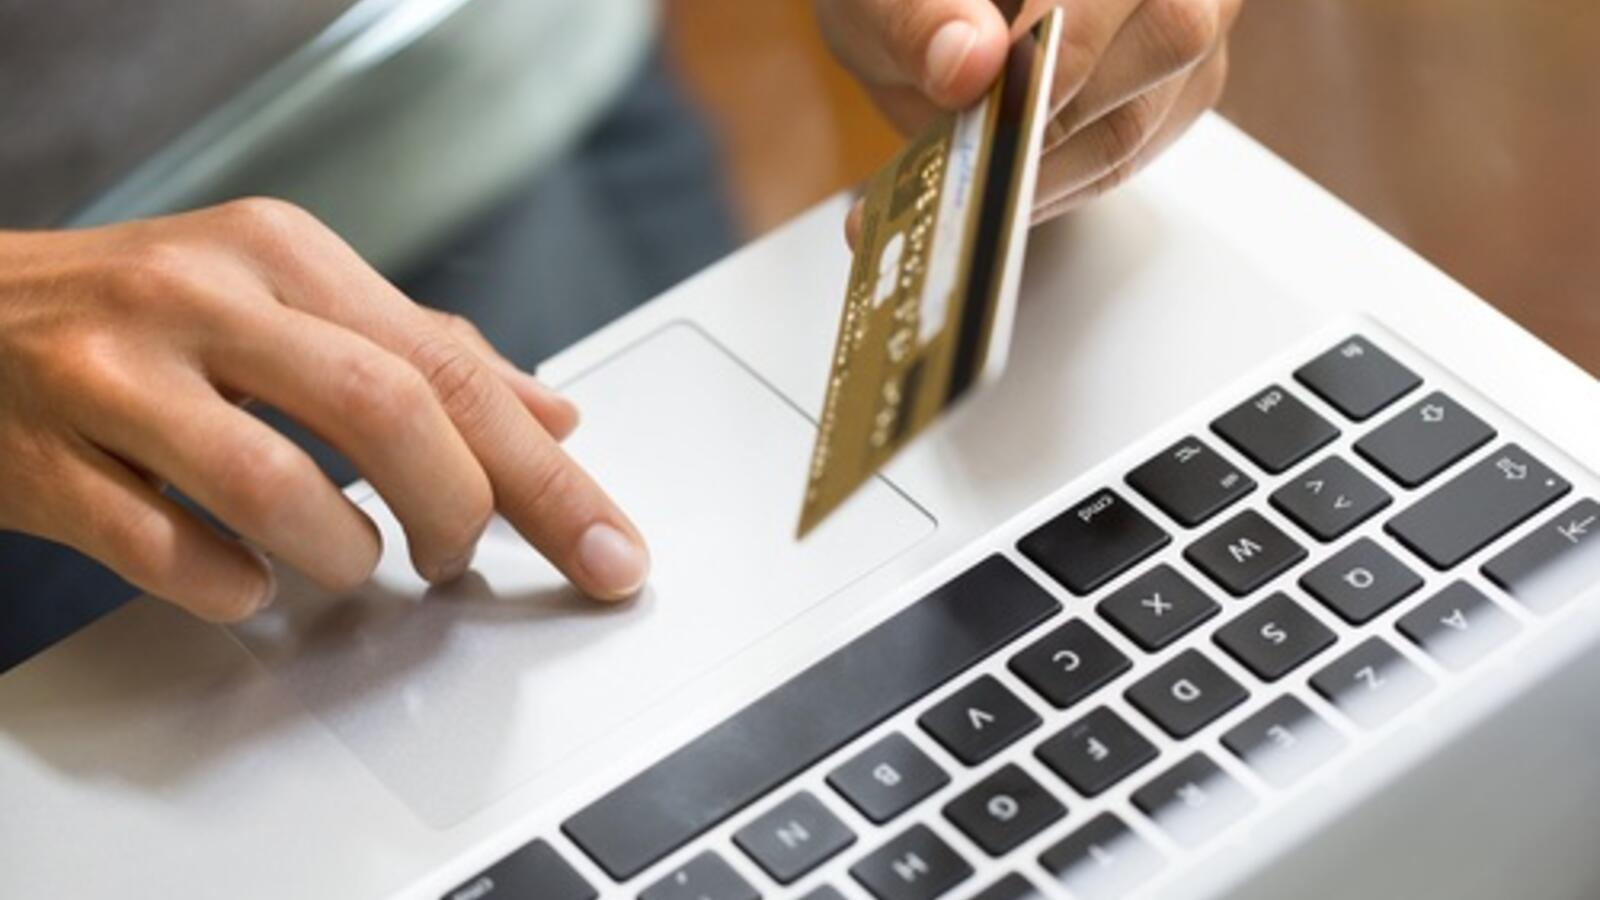 THE LIMIT SET FOR CASHLESS PAYMENTS HAS BEEN CHANGED